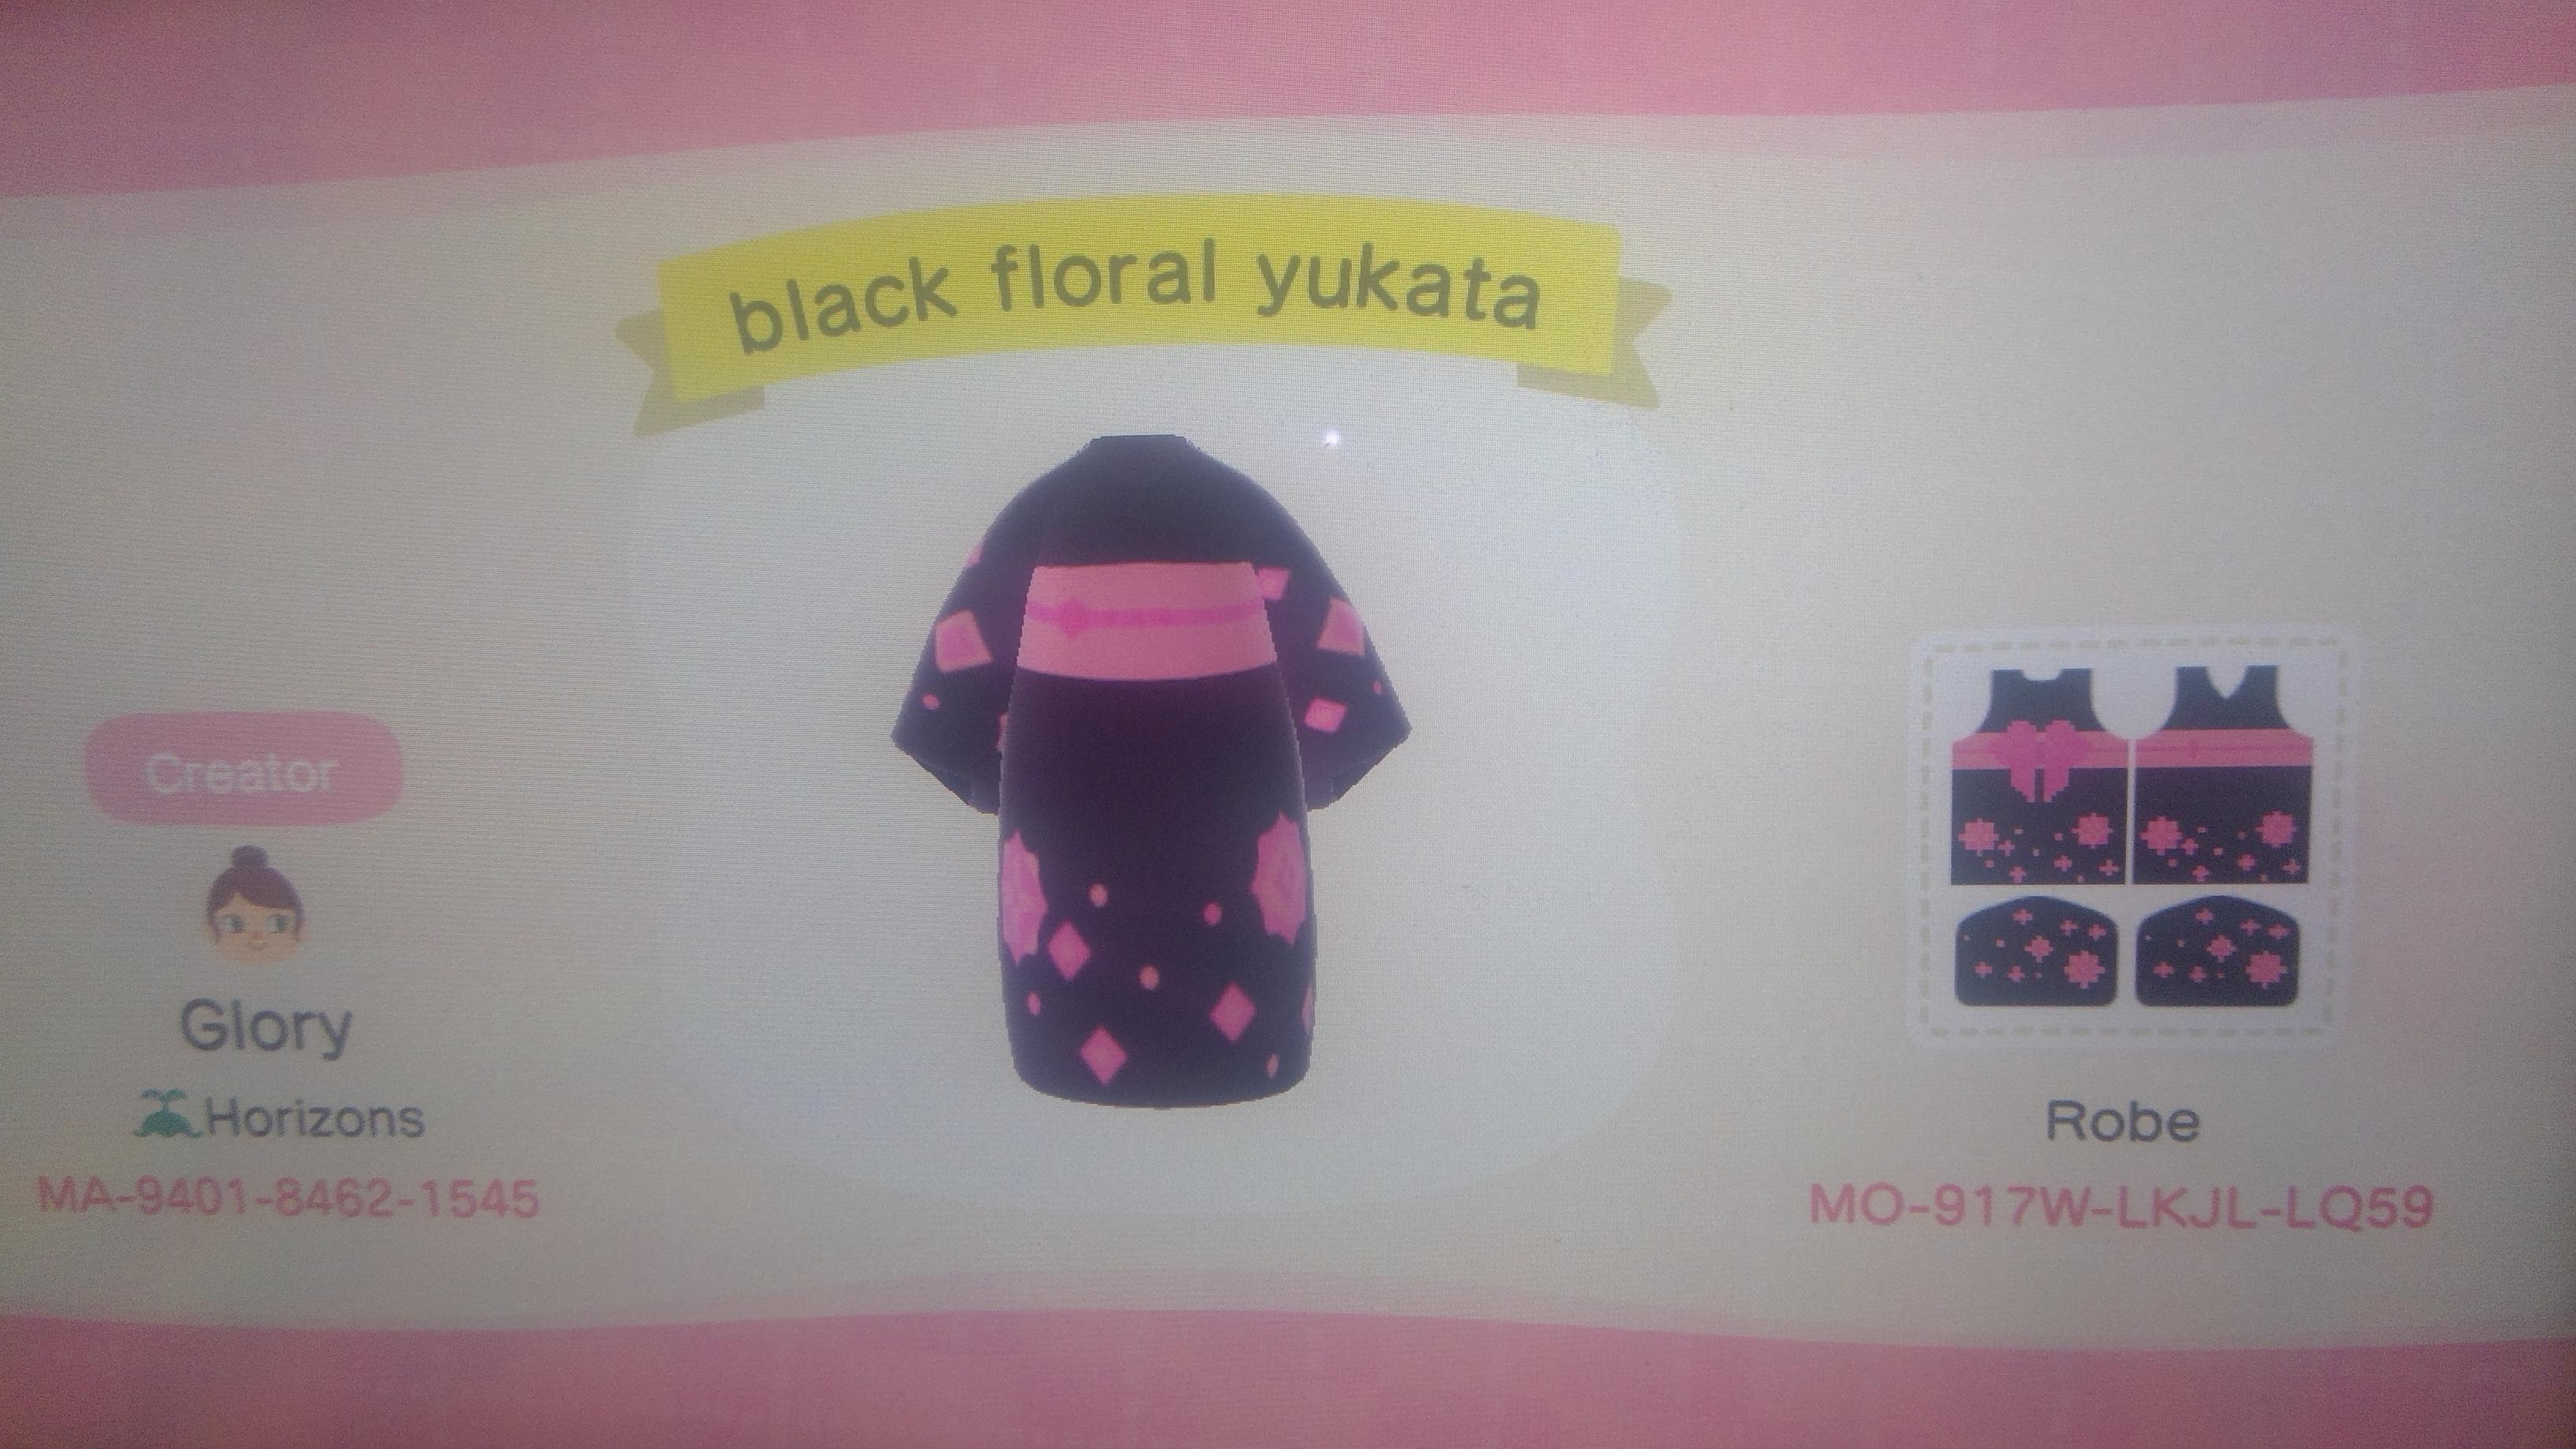 I haven't made a lot of clothing recently and didn't spend the most time on this but I made this floral yukata, I hope you enjoy it!